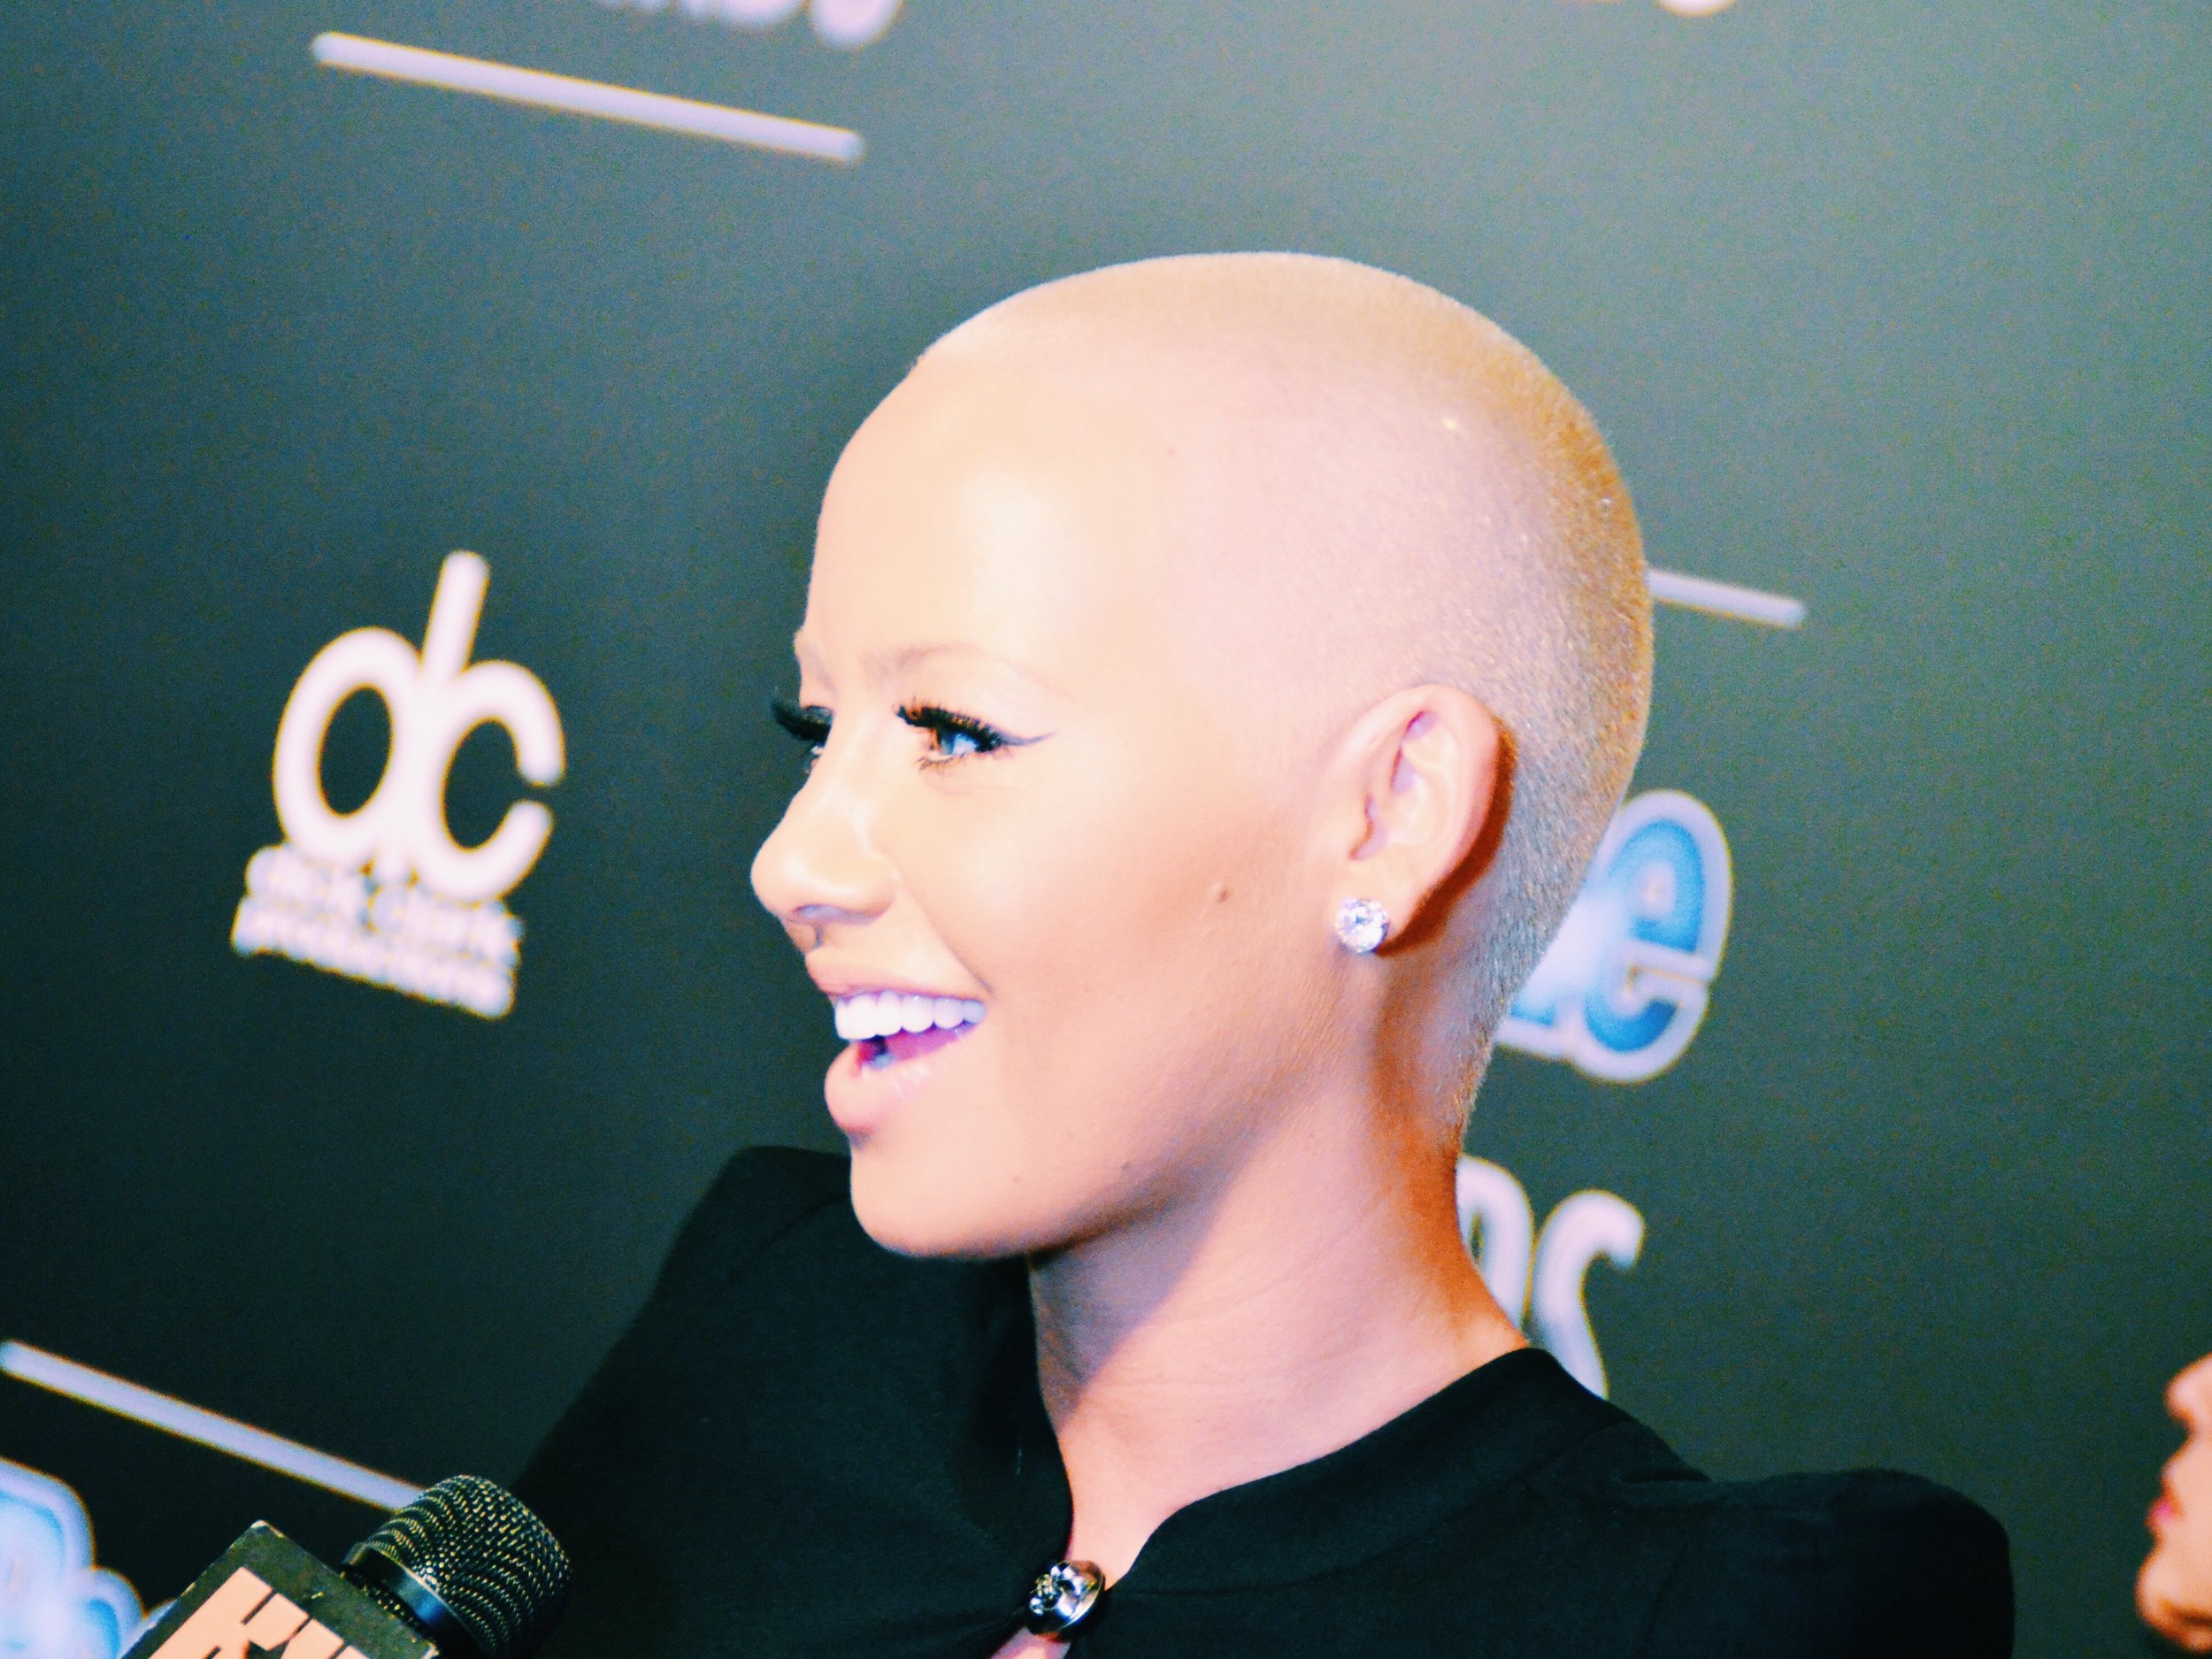 Mingle Media TV, Amber Rose - 2014 People Magazine Awards, modified by Colby Marie Z, CC BY-SA 2.0